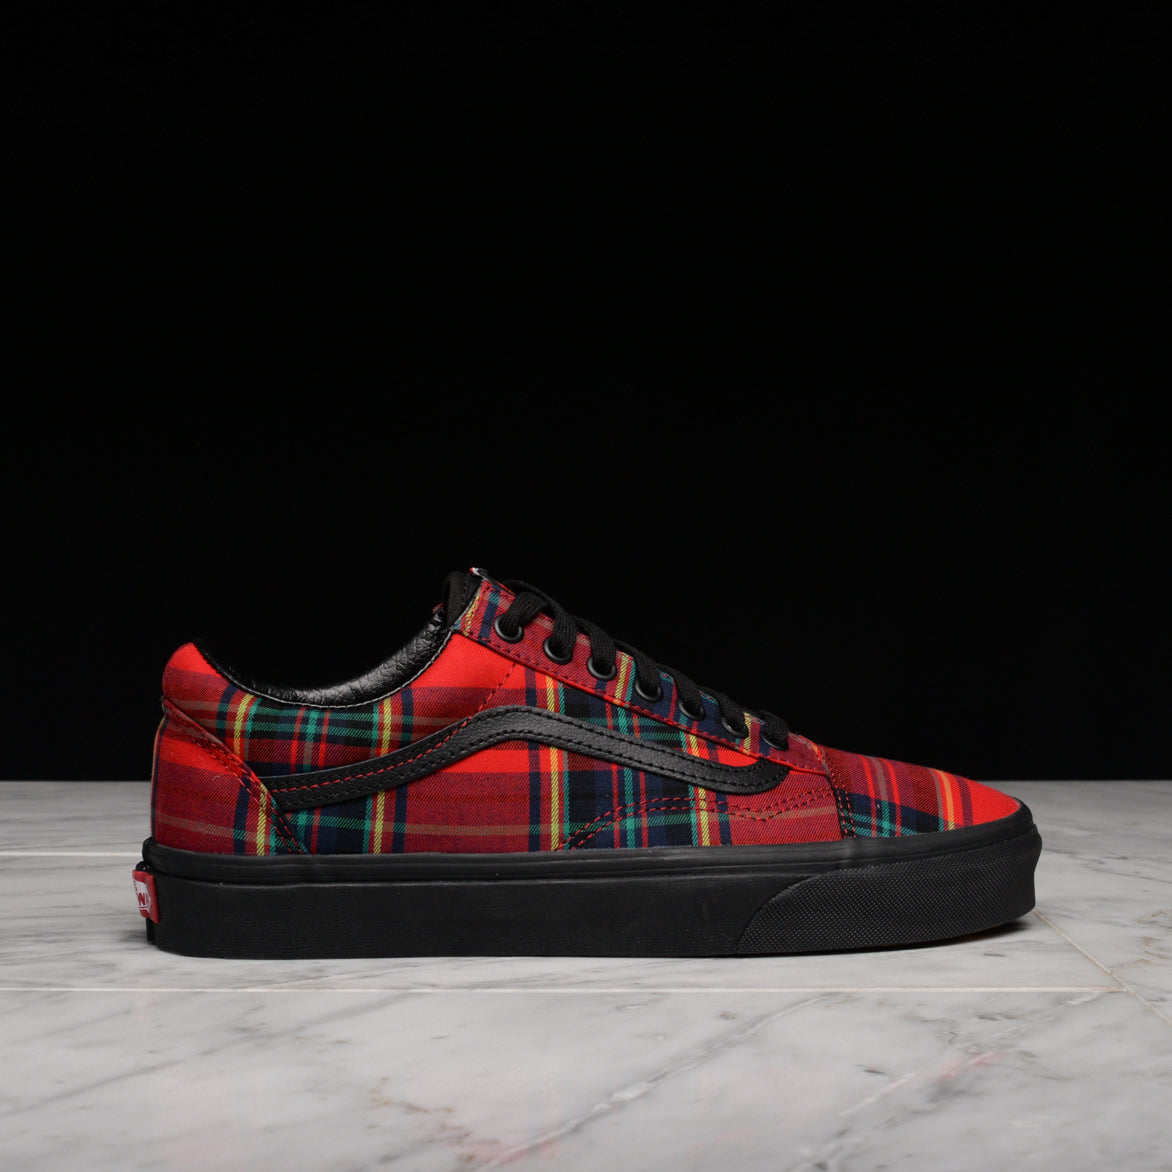 crazy price watch size 40 Buy 2 OFF ANY vans old skool plaid CASE AND GET 70% OFF!